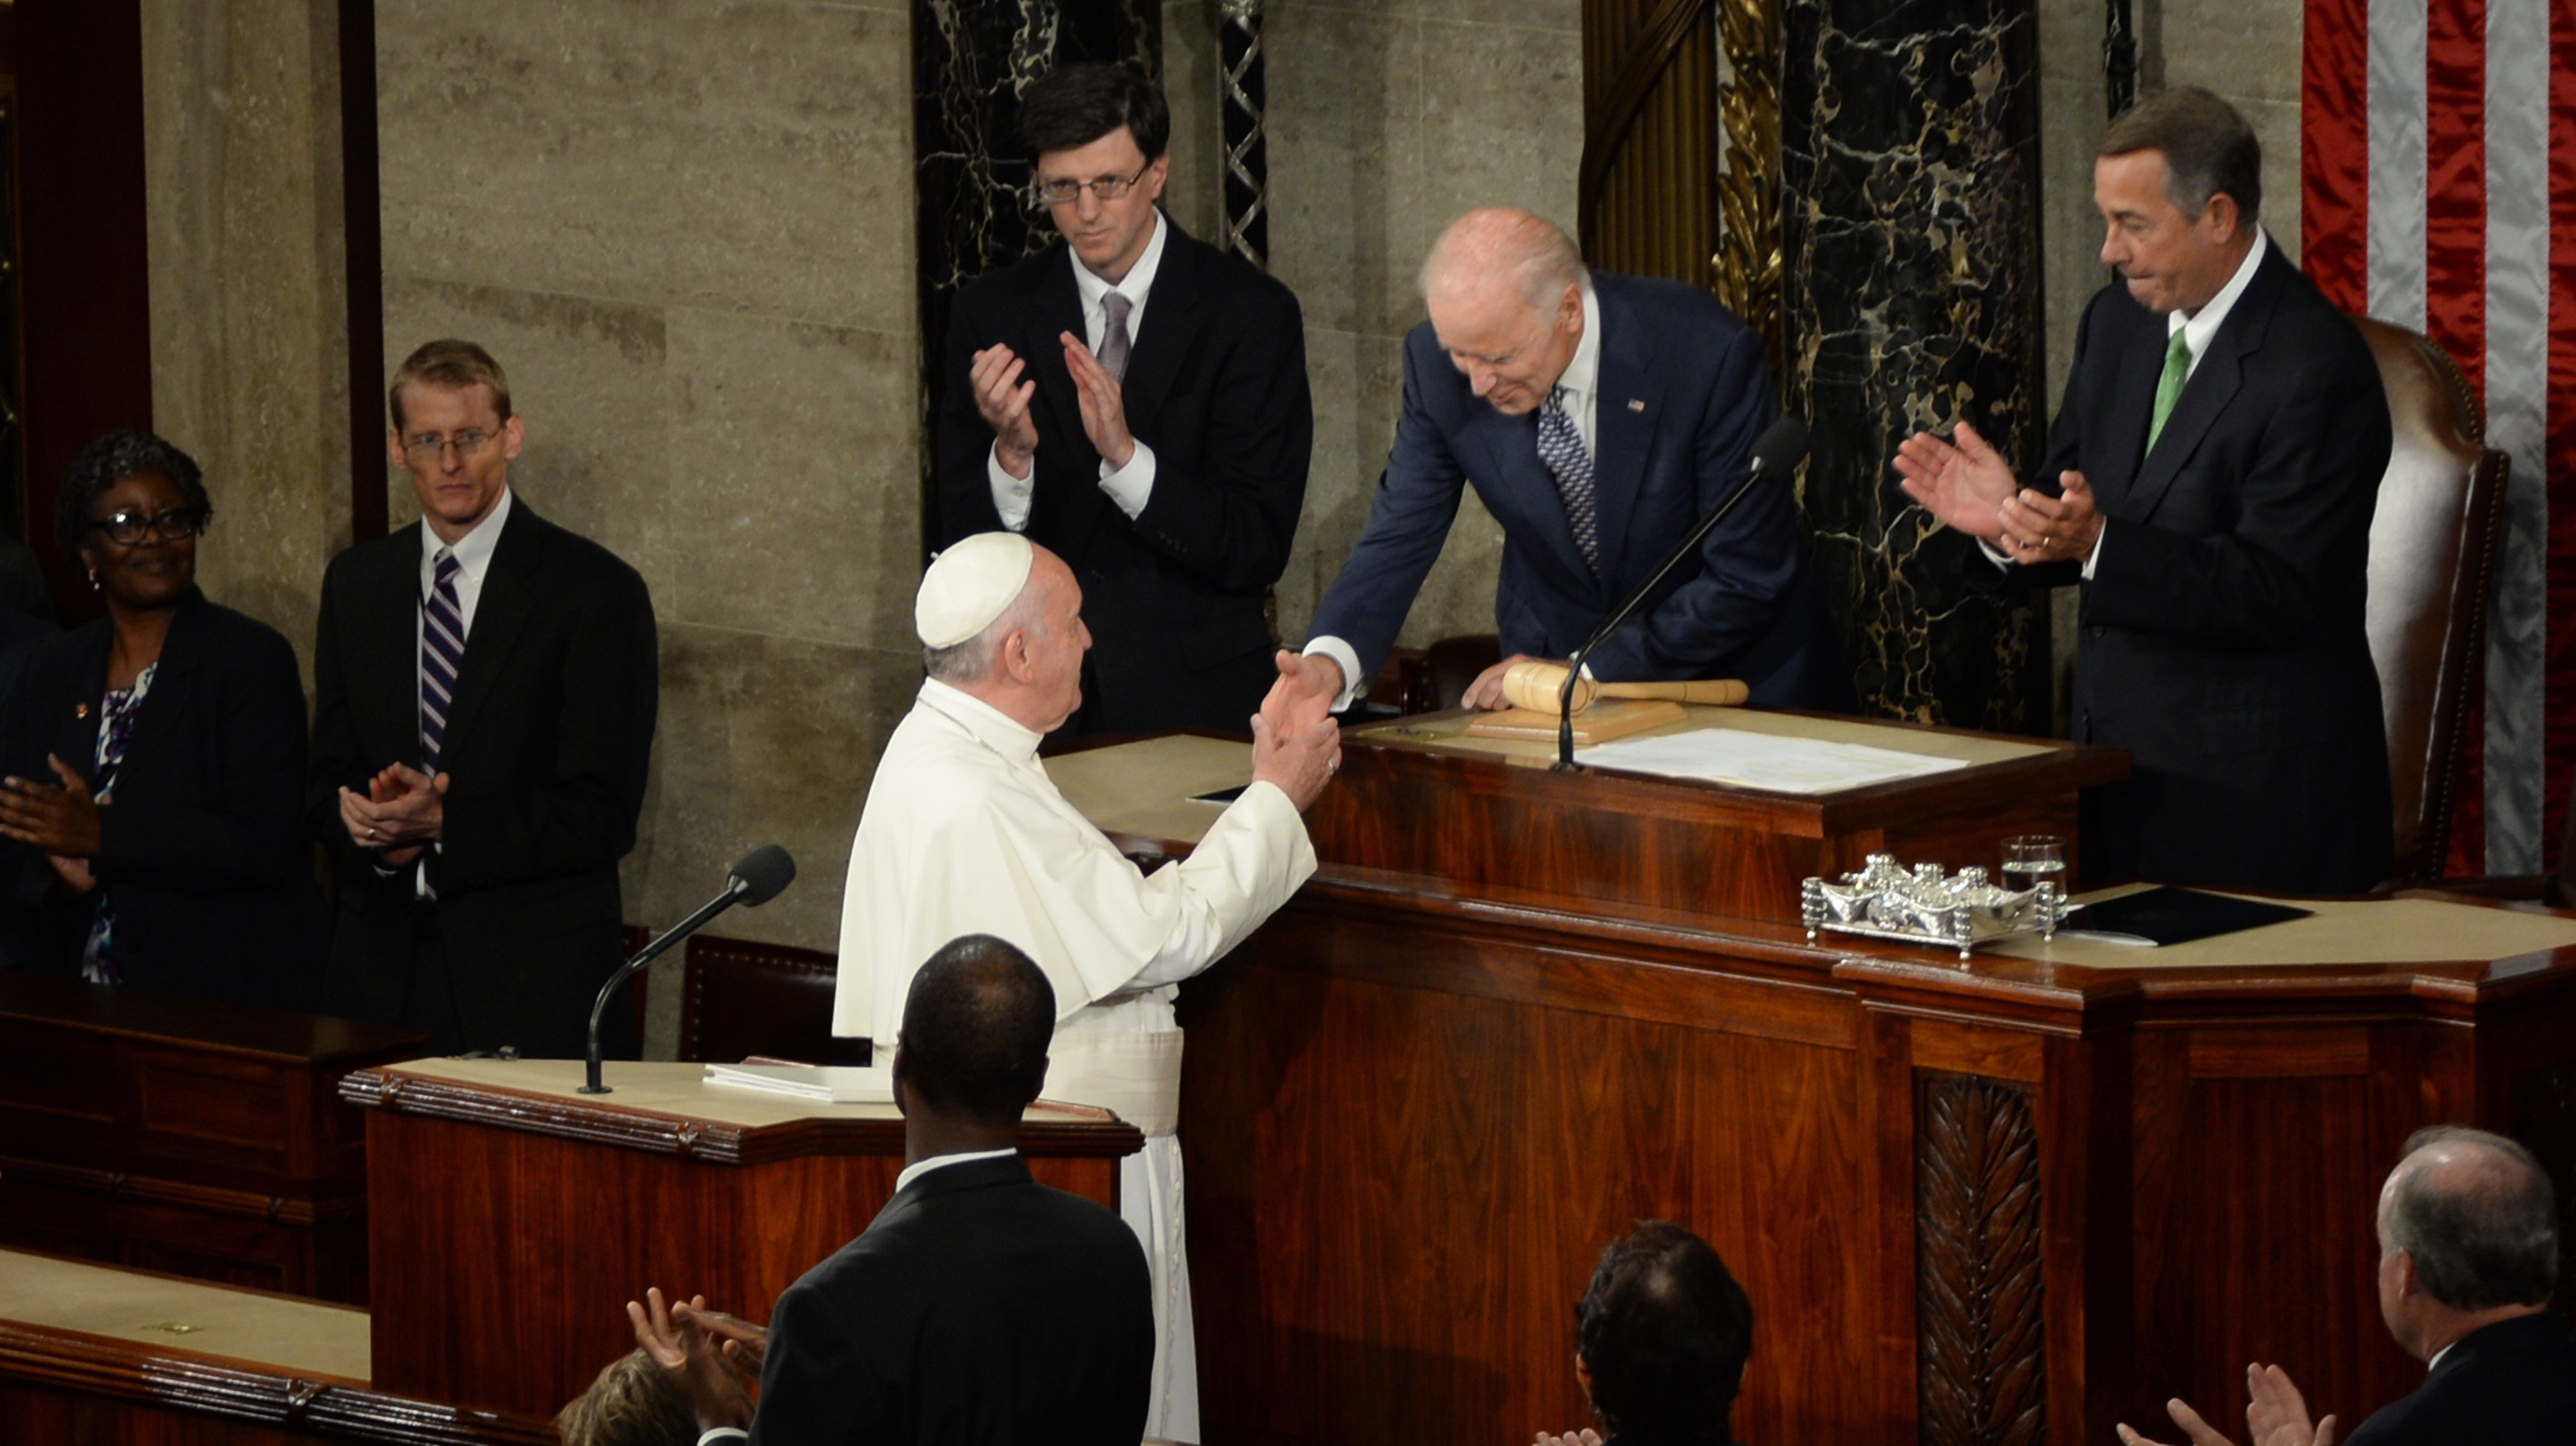 Pope Francis addresses the 114th U.S. Congress for the first time in history.